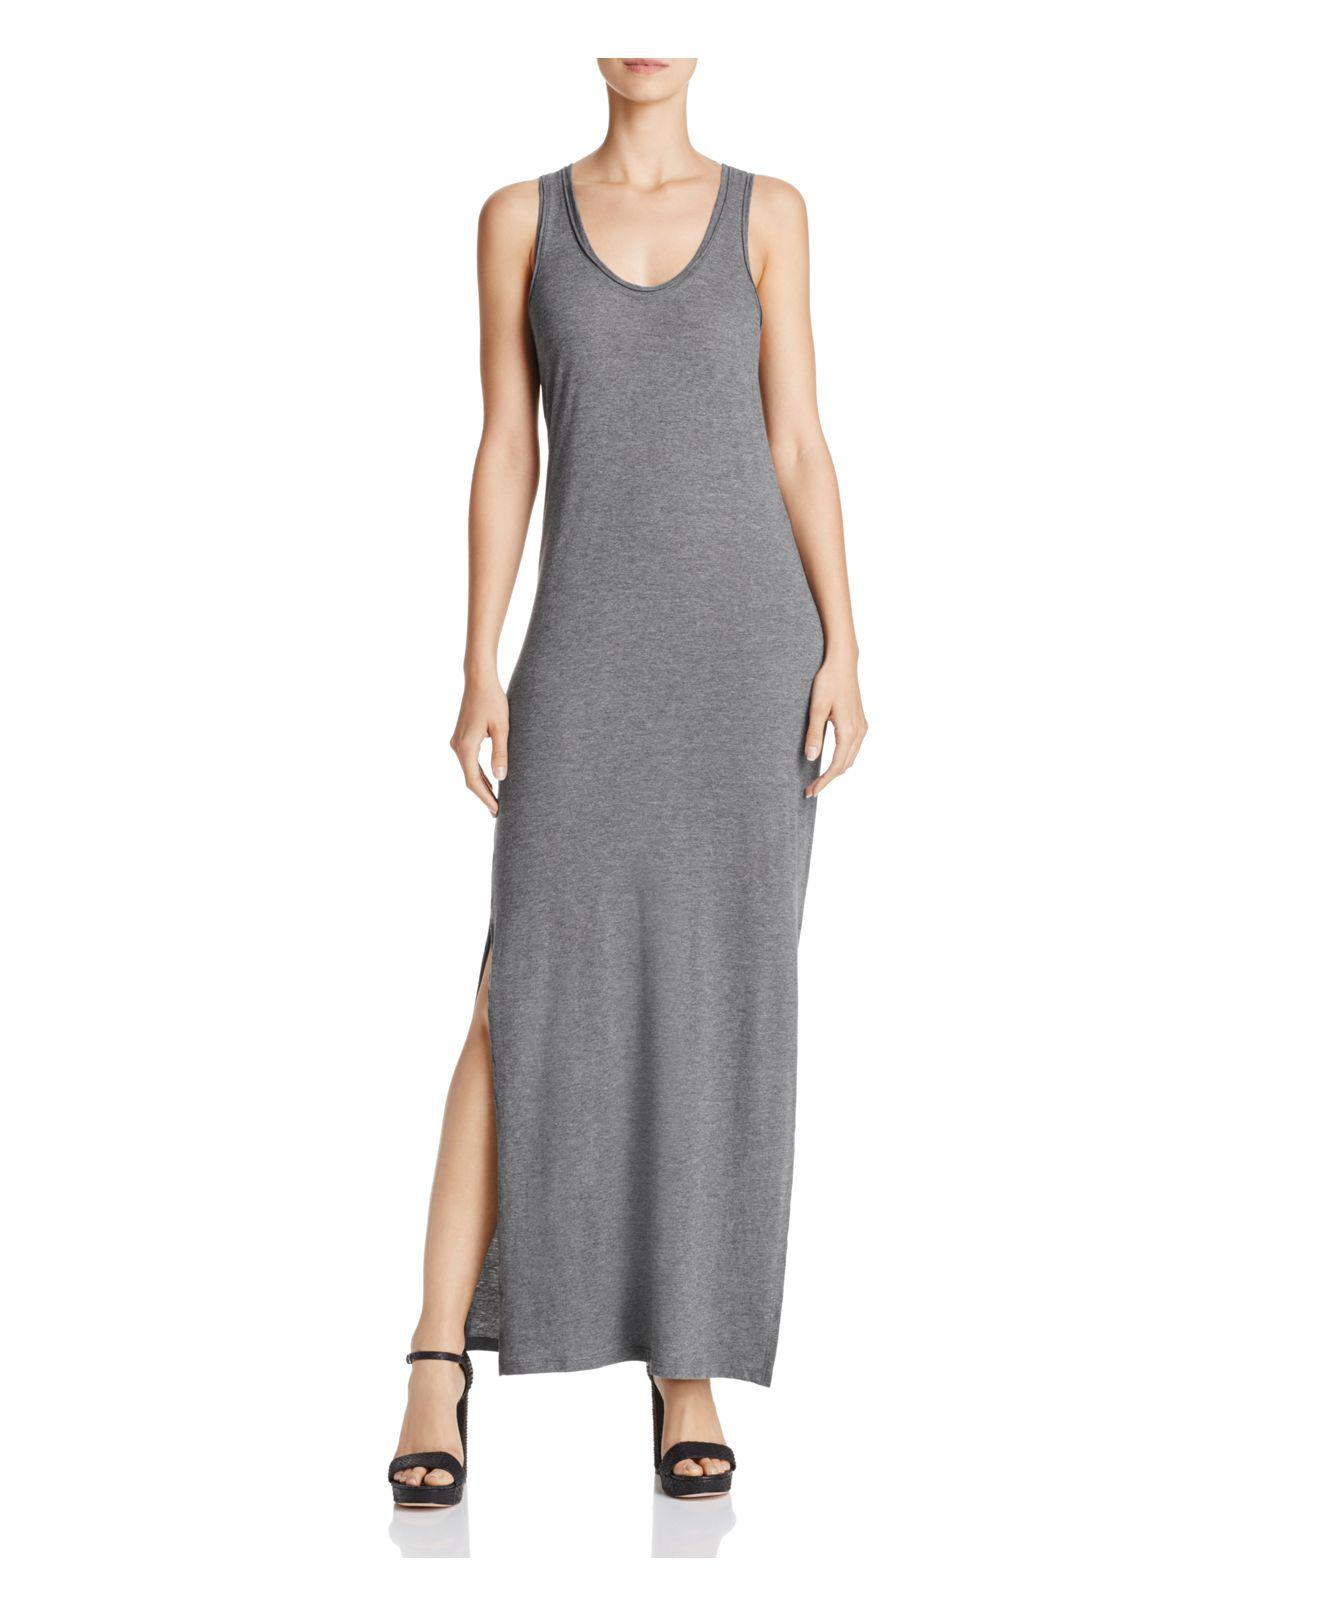 4d1606a443e Theory Sameetha Plume Jersey Maxi Dress in Gray - Lyst